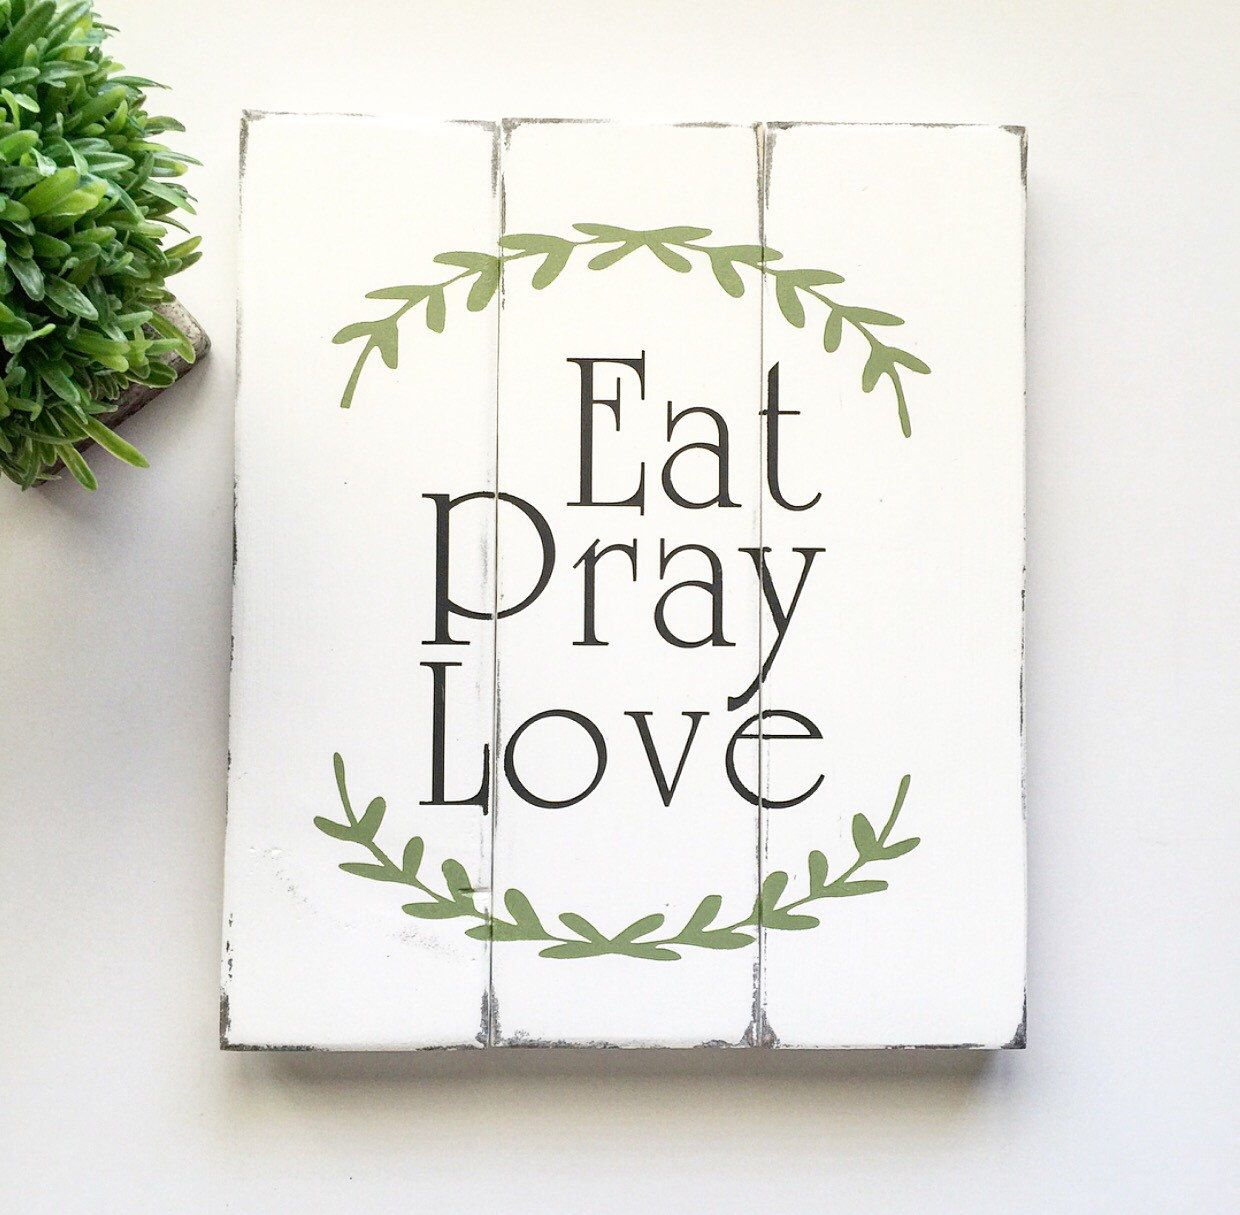 A personal favorite from my Etsy shop https://www.etsy.com/listing/265736847/eat-pray-love-shiplap-wood-shiplap-sign